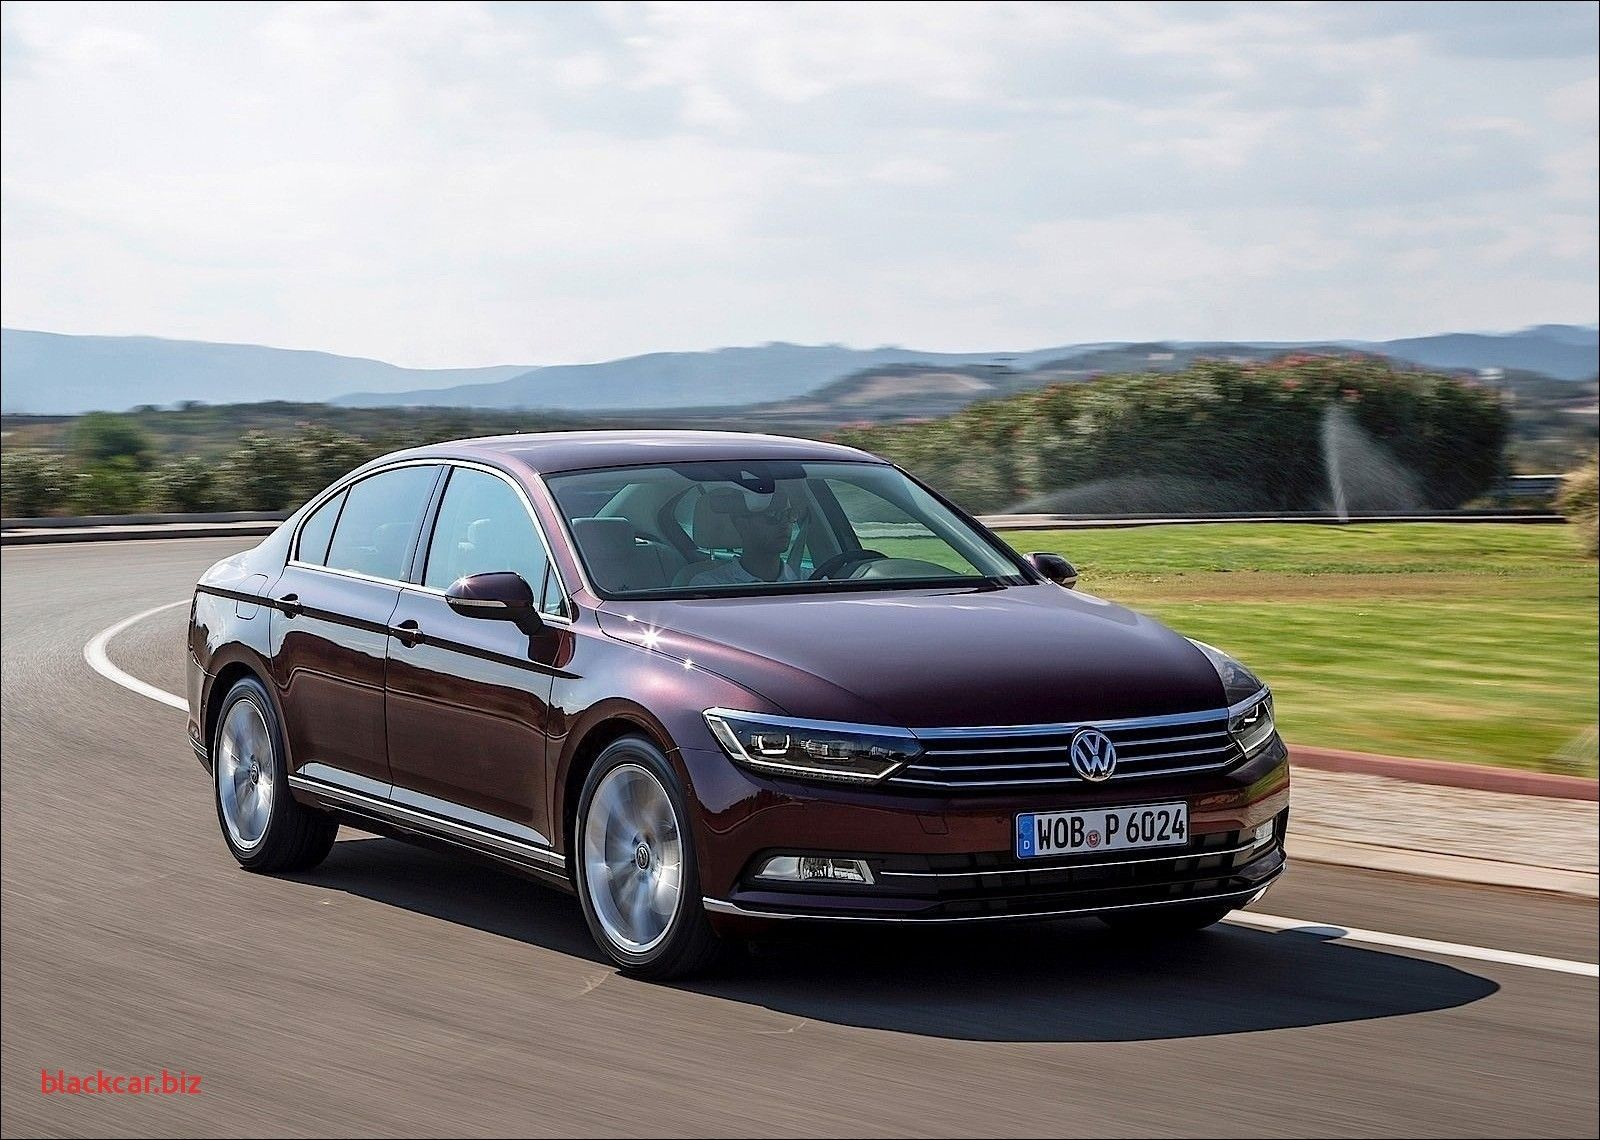 Read Our Most Comprehensive Review Of The 2019 Vw Passat Standard Features Trim Levels And Available Options Additional New Features For The In 2020 With Images Volkswagen Passat